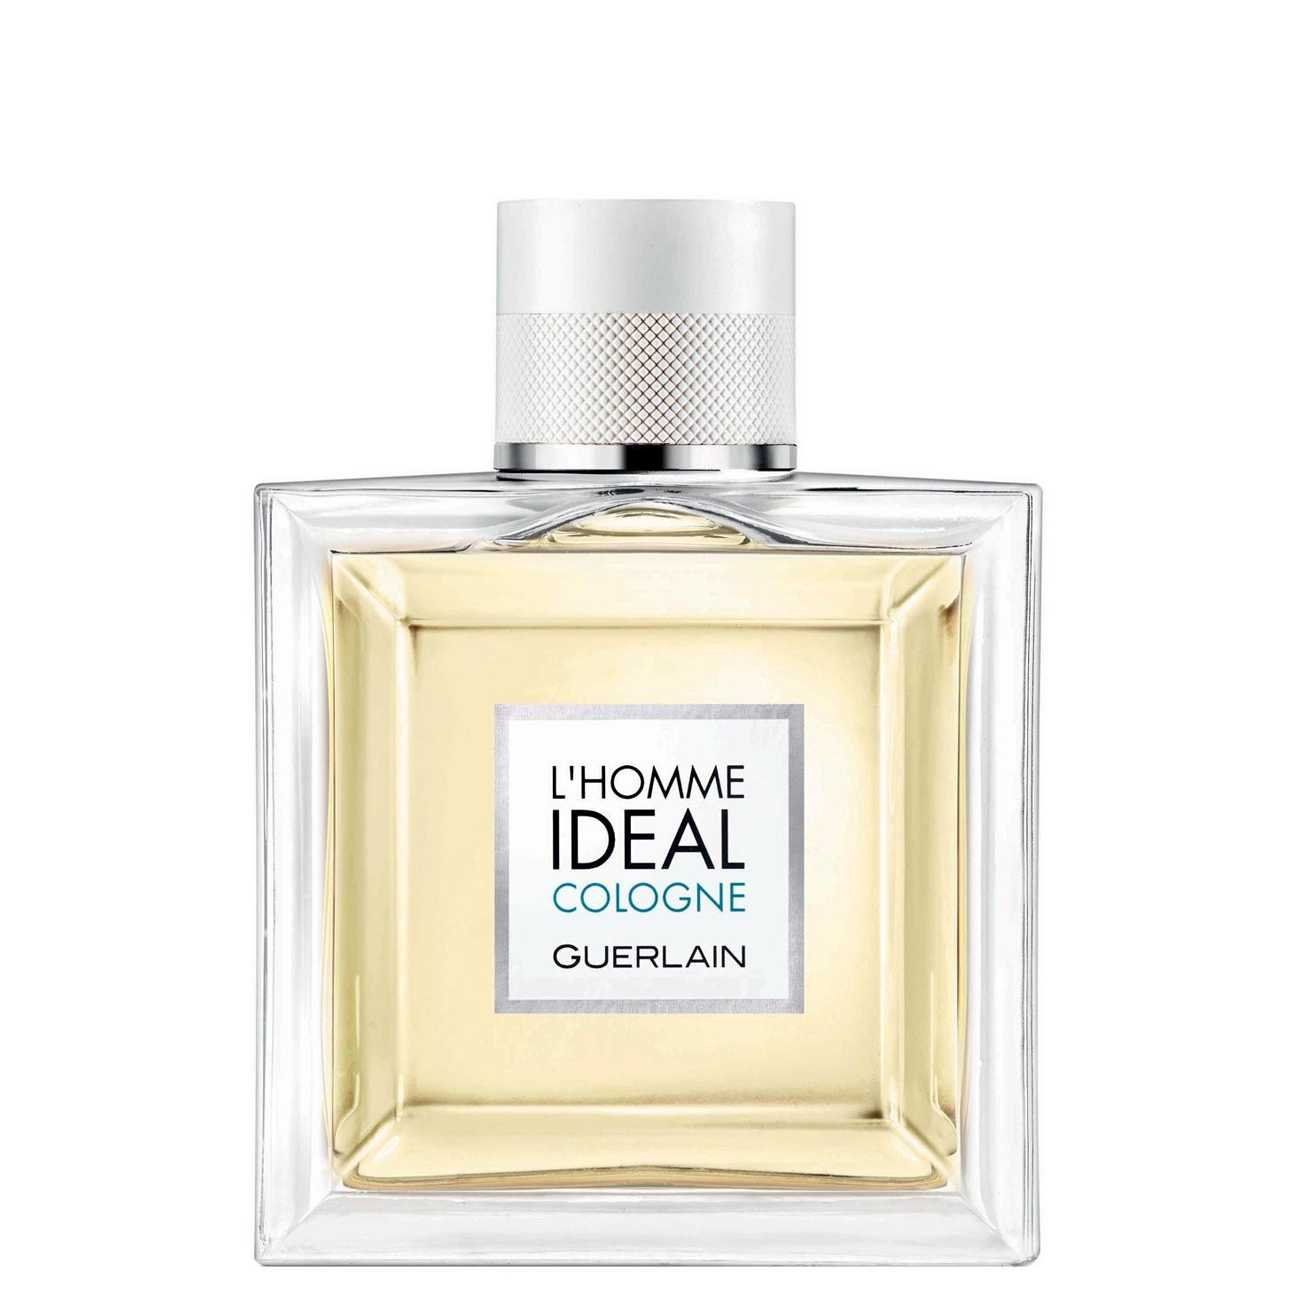 L'HOMME IDEAL 100ml